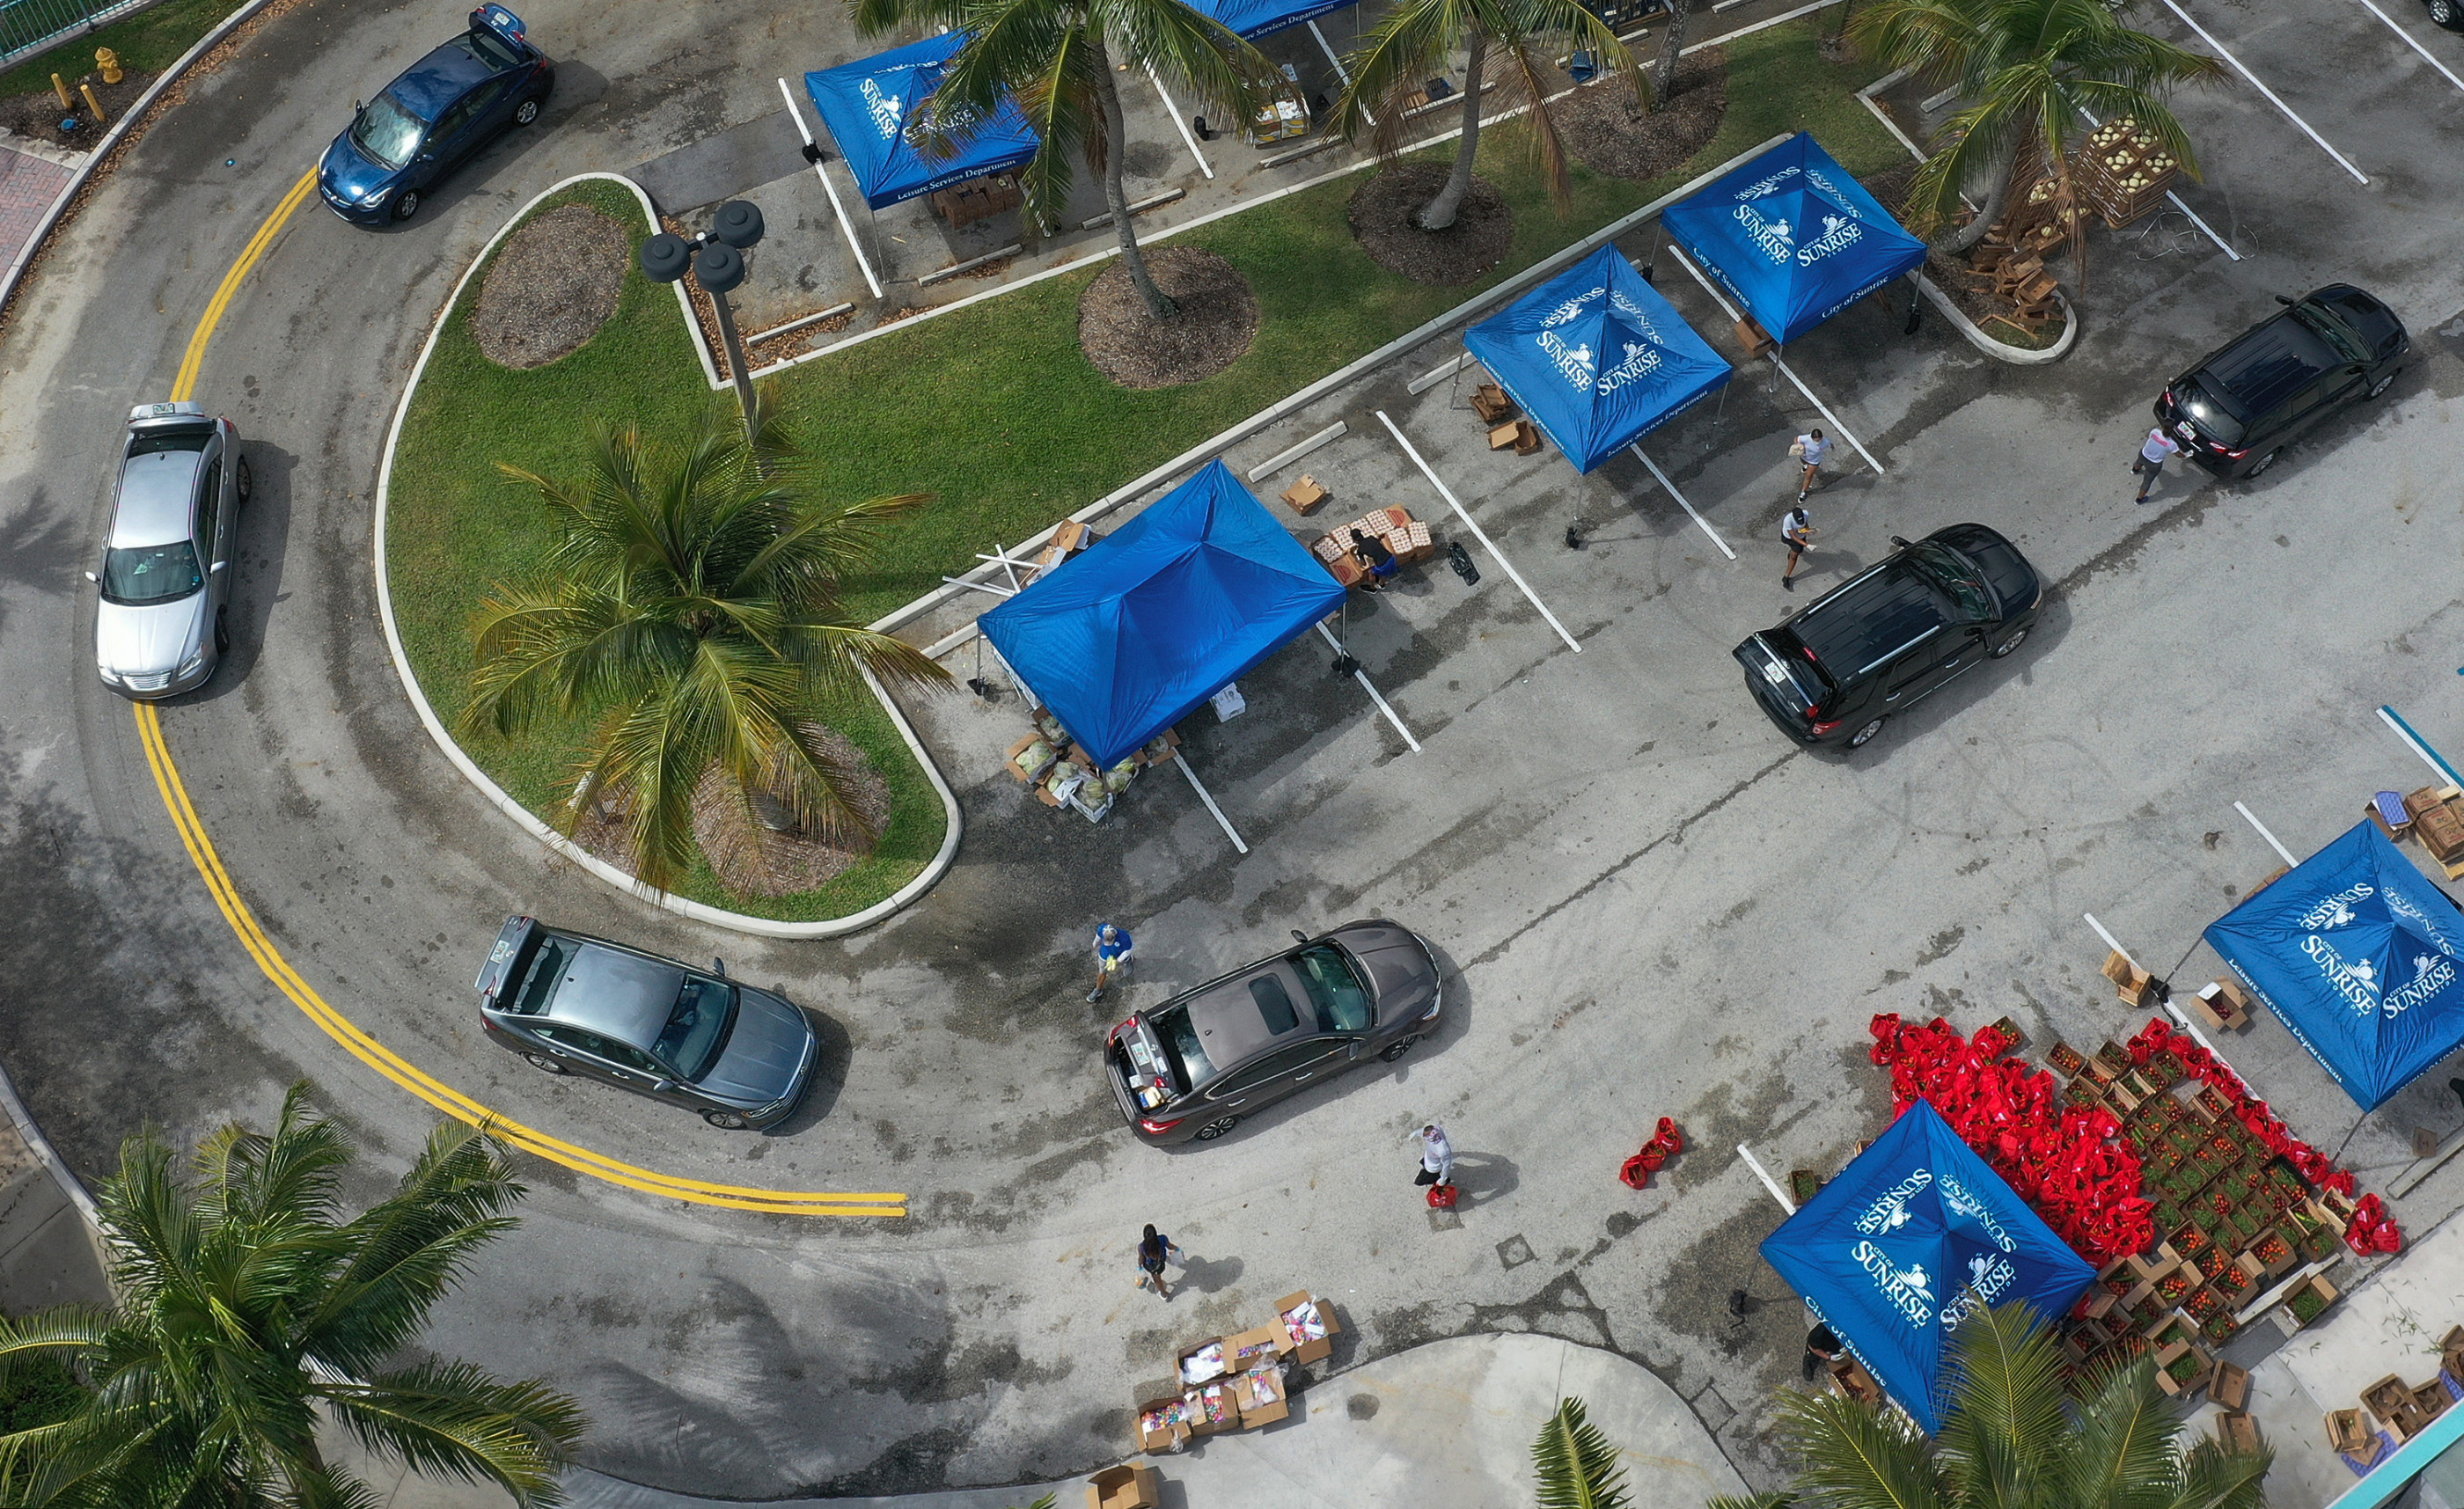 SUNRISE, FLORIDA - APRIL 06: An aerial view from a drone shows vehicles passing though as they receive food provided by the food bank Feeding South Florida and being given away by the City of Sunrise on April 06, 2020 in Sunrise, Florida. Feeding South Florida has seen a 600 percent increase in the those asking for food aid as people,some of whom have lost jobs, need to make ends meet during the coronavirus pandemic. The groceries being given away included milk, chicken, apples, tomatoes, cantaloupe as well as Easter eggs.  (Photo by Joe Raedle/Getty Images)